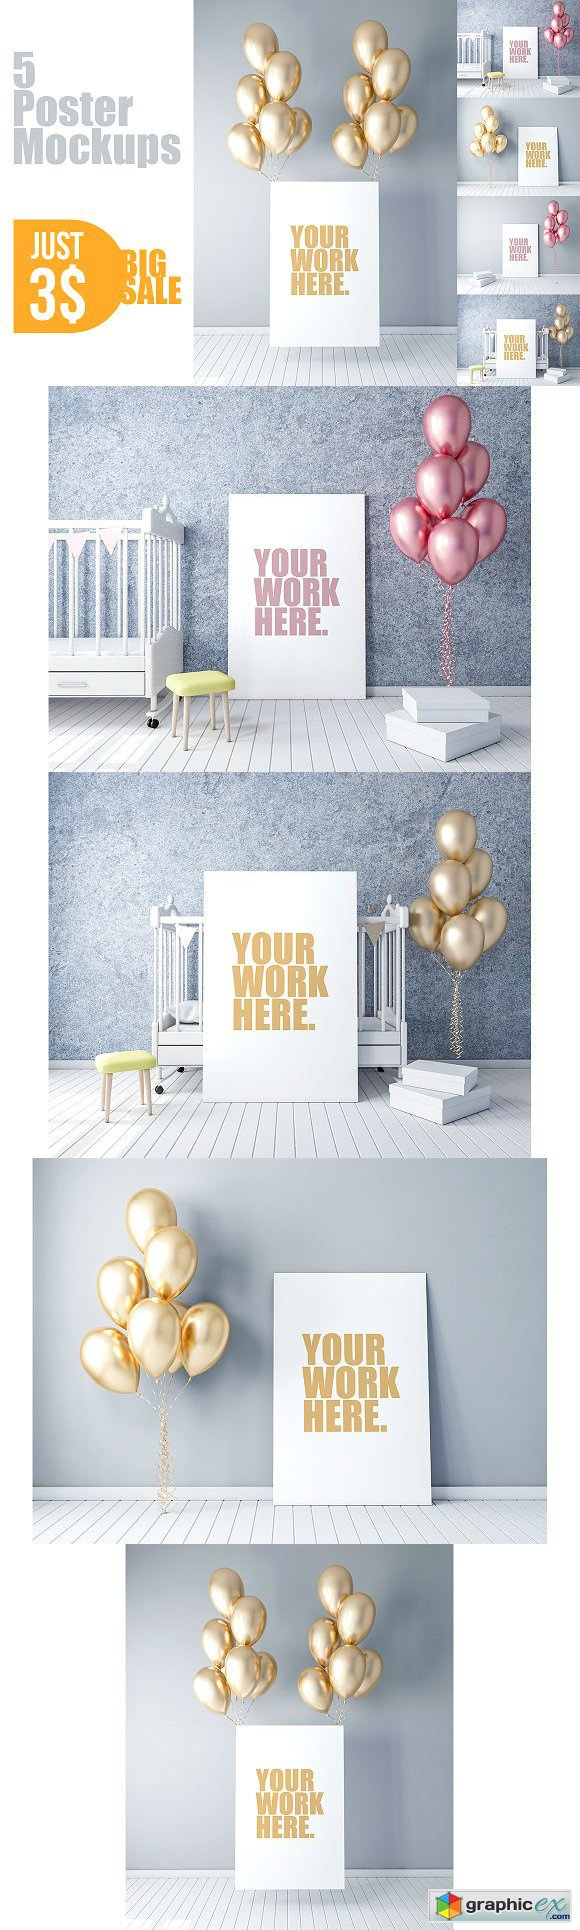 Canvas Poster PSD Mockup